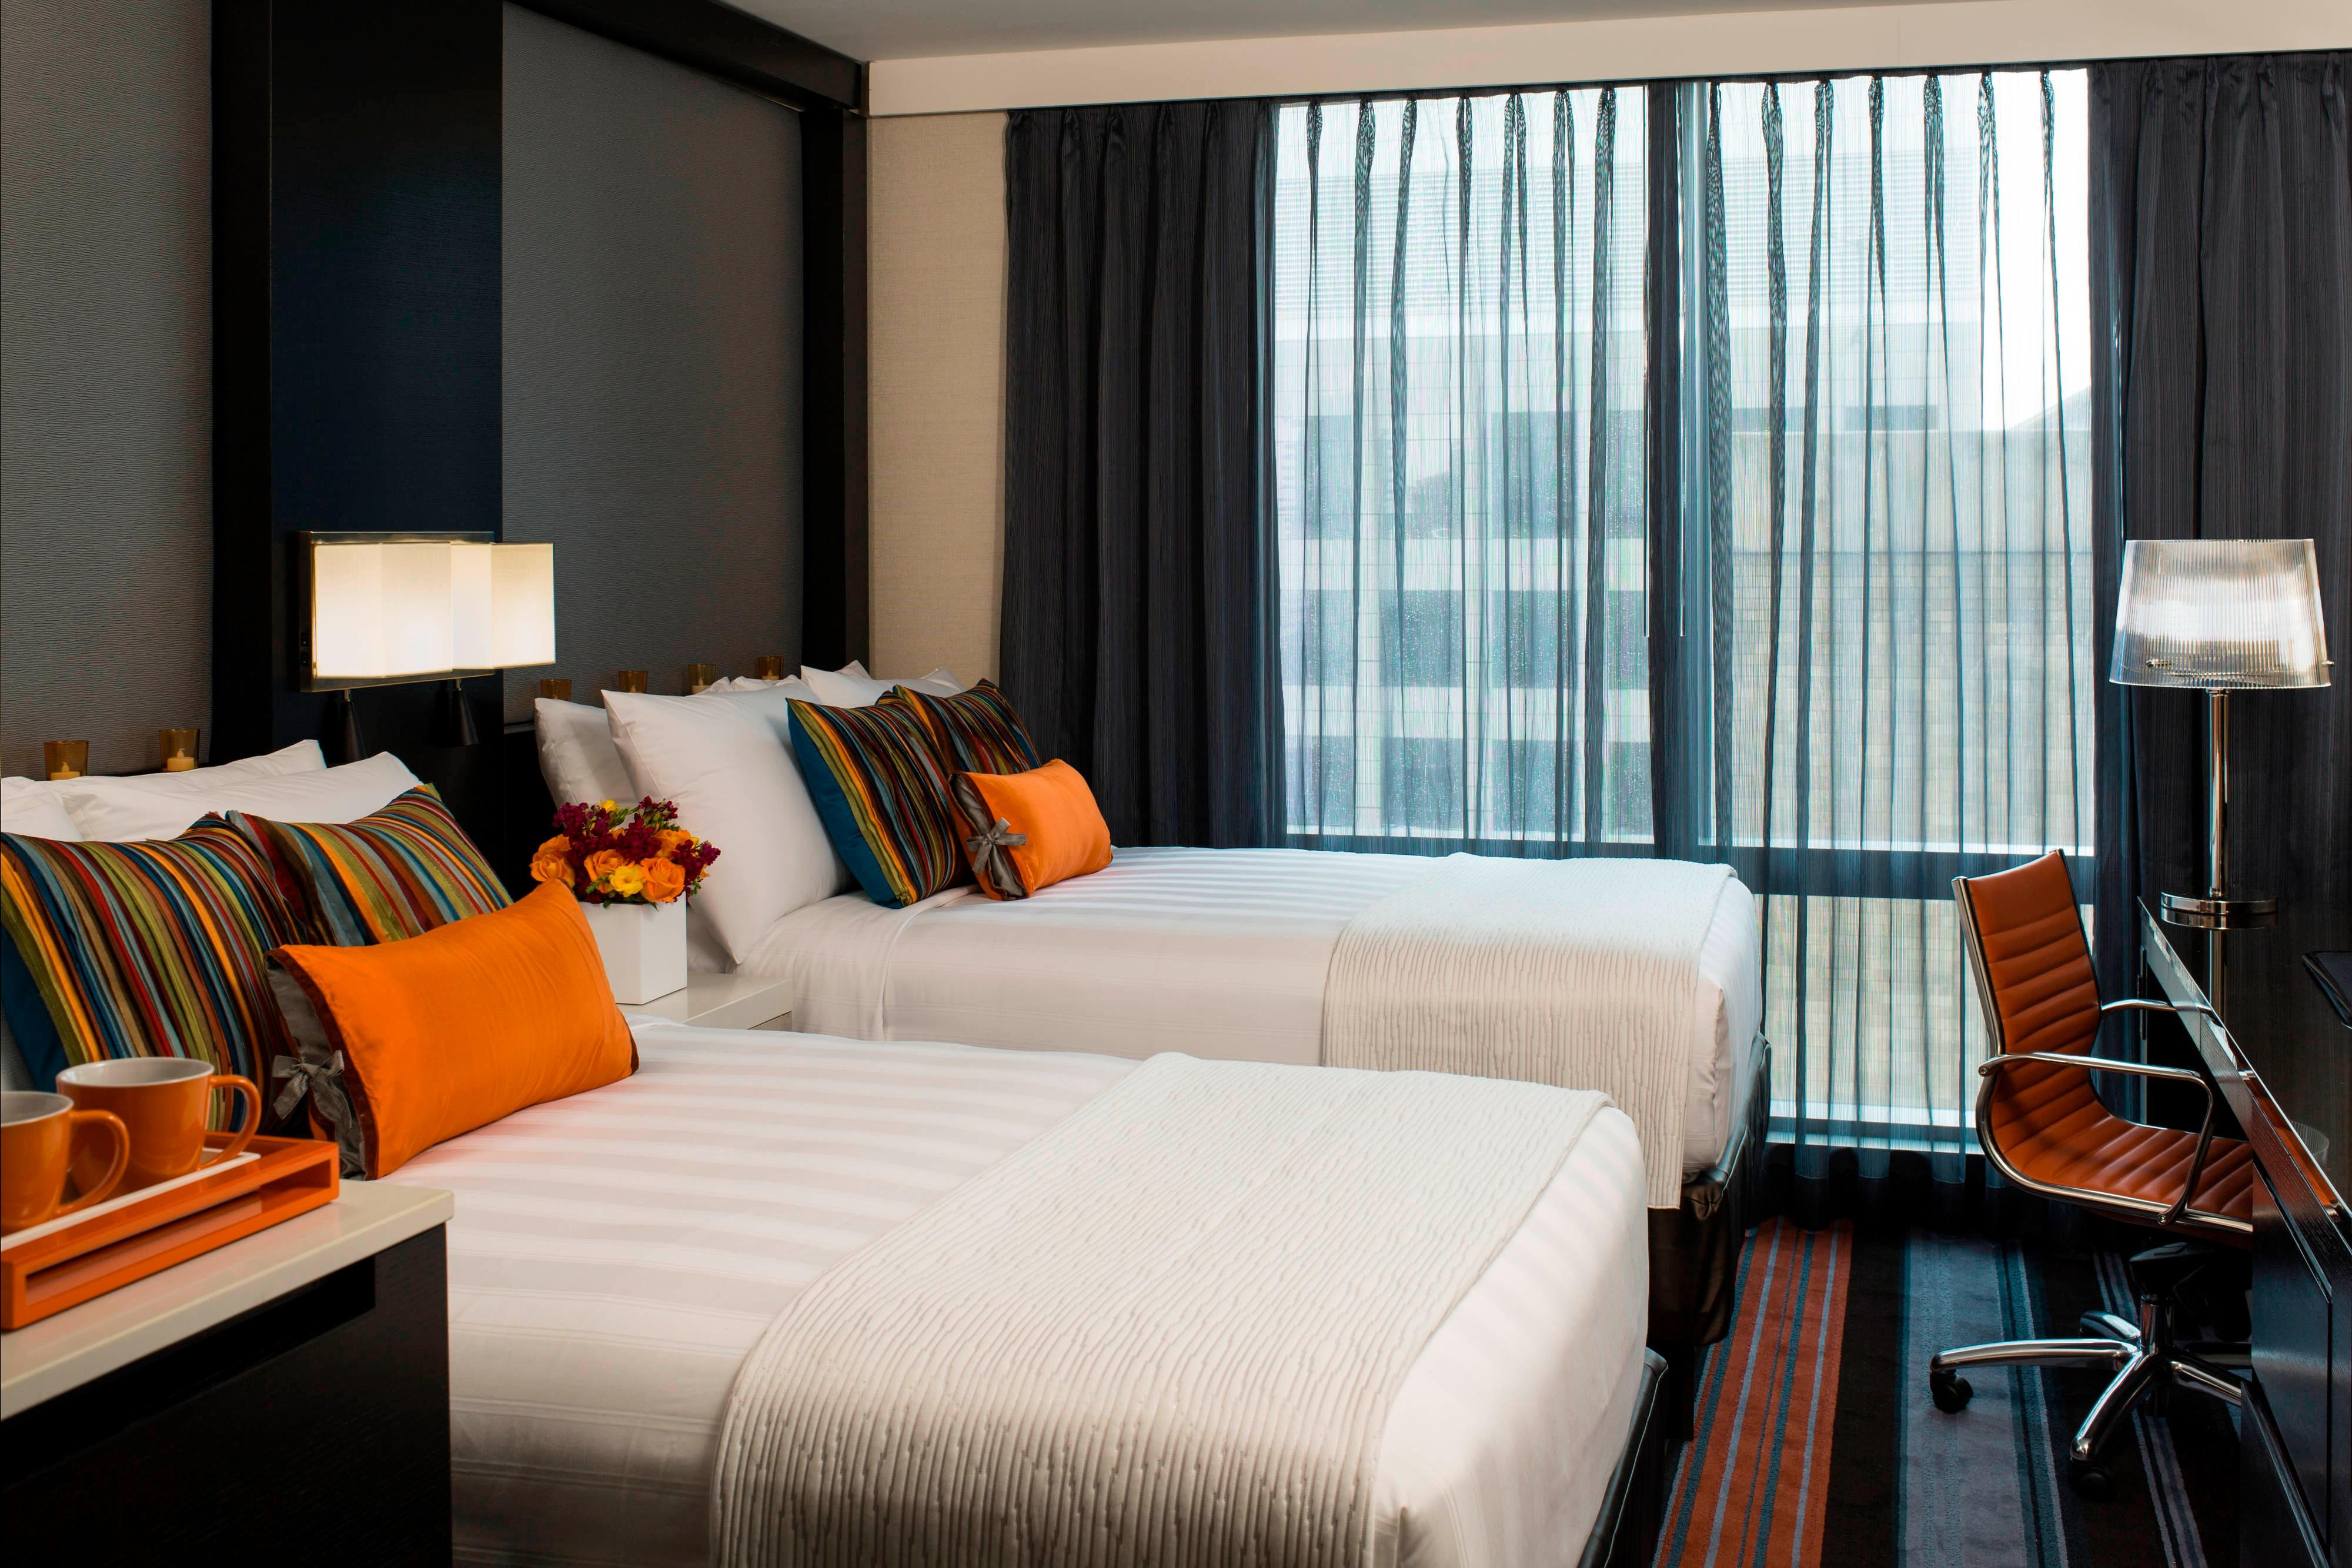 Hotel Rooms Near Hotel Rooms Near Times Square | Courtyard New York